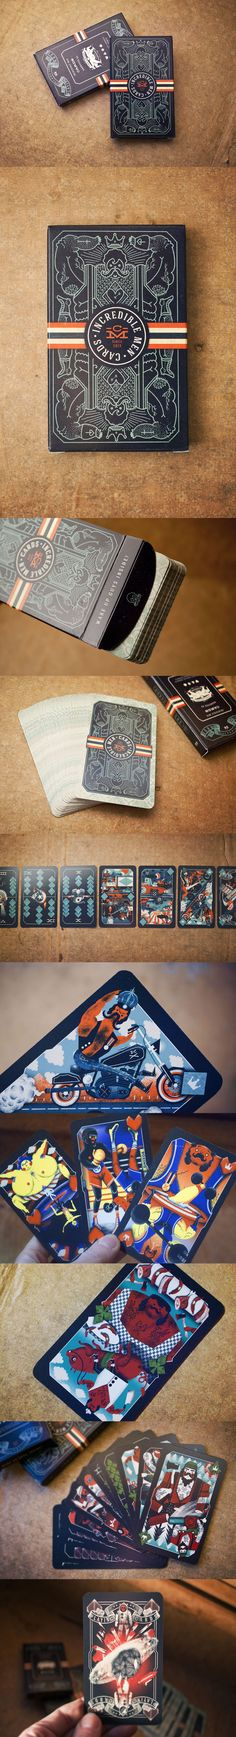 Illustrated Playing Cards - The illustration is nice - but I really like the colour scheme for this - L Graphic Design Illustration, Graphic Design Art, Typography Design, Web Design, Print Design, Brand Packaging, Packaging Design, Branding Design, Playing Cards Art